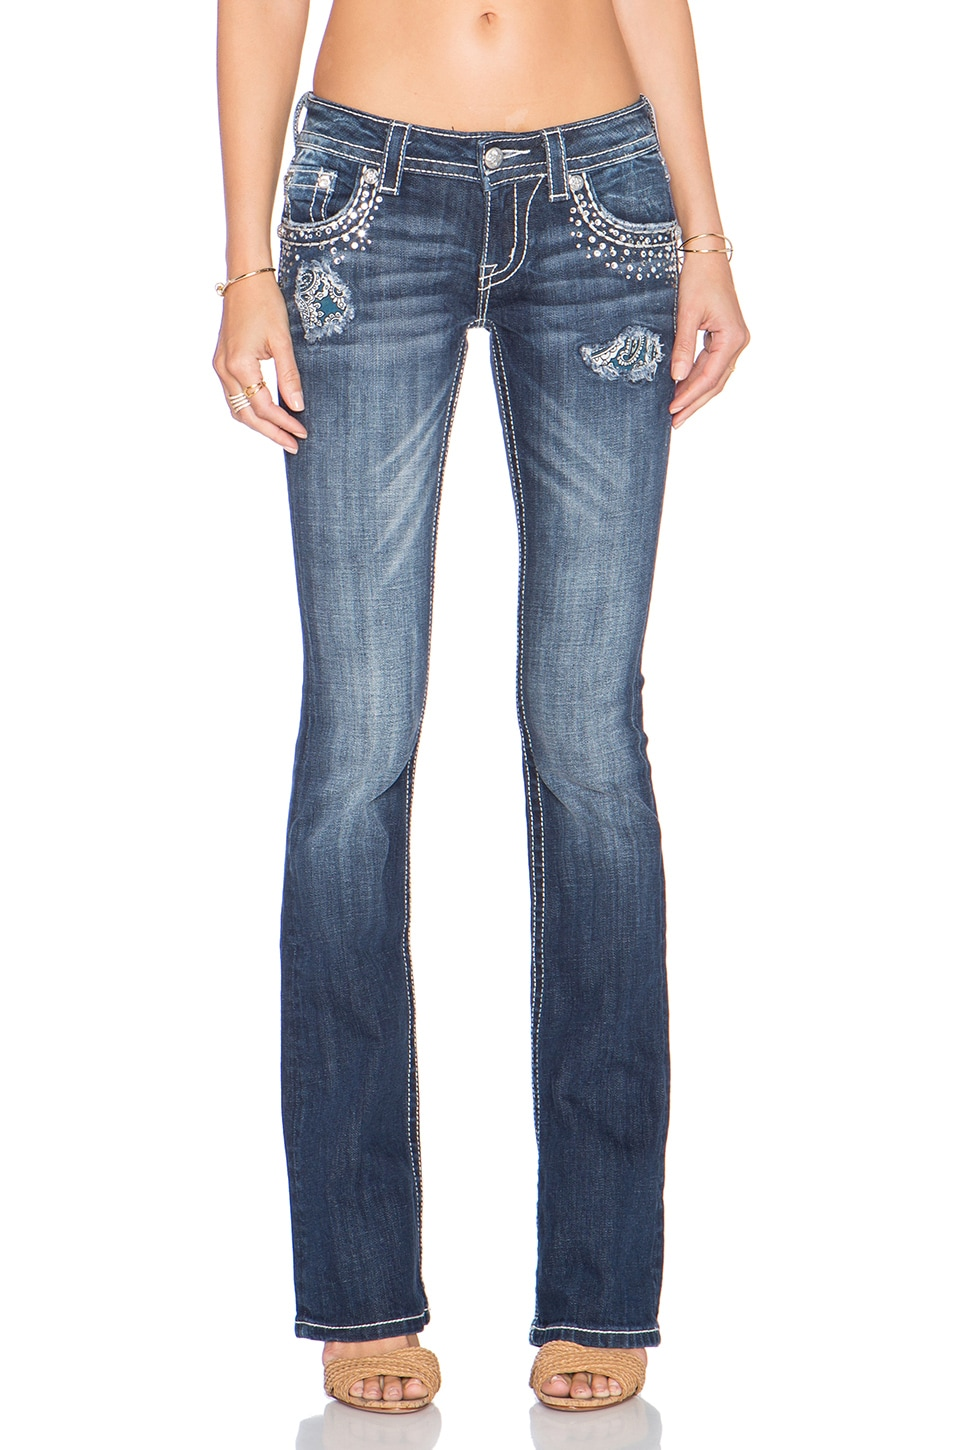 Miss Me Jeans Bootcut in MK 414